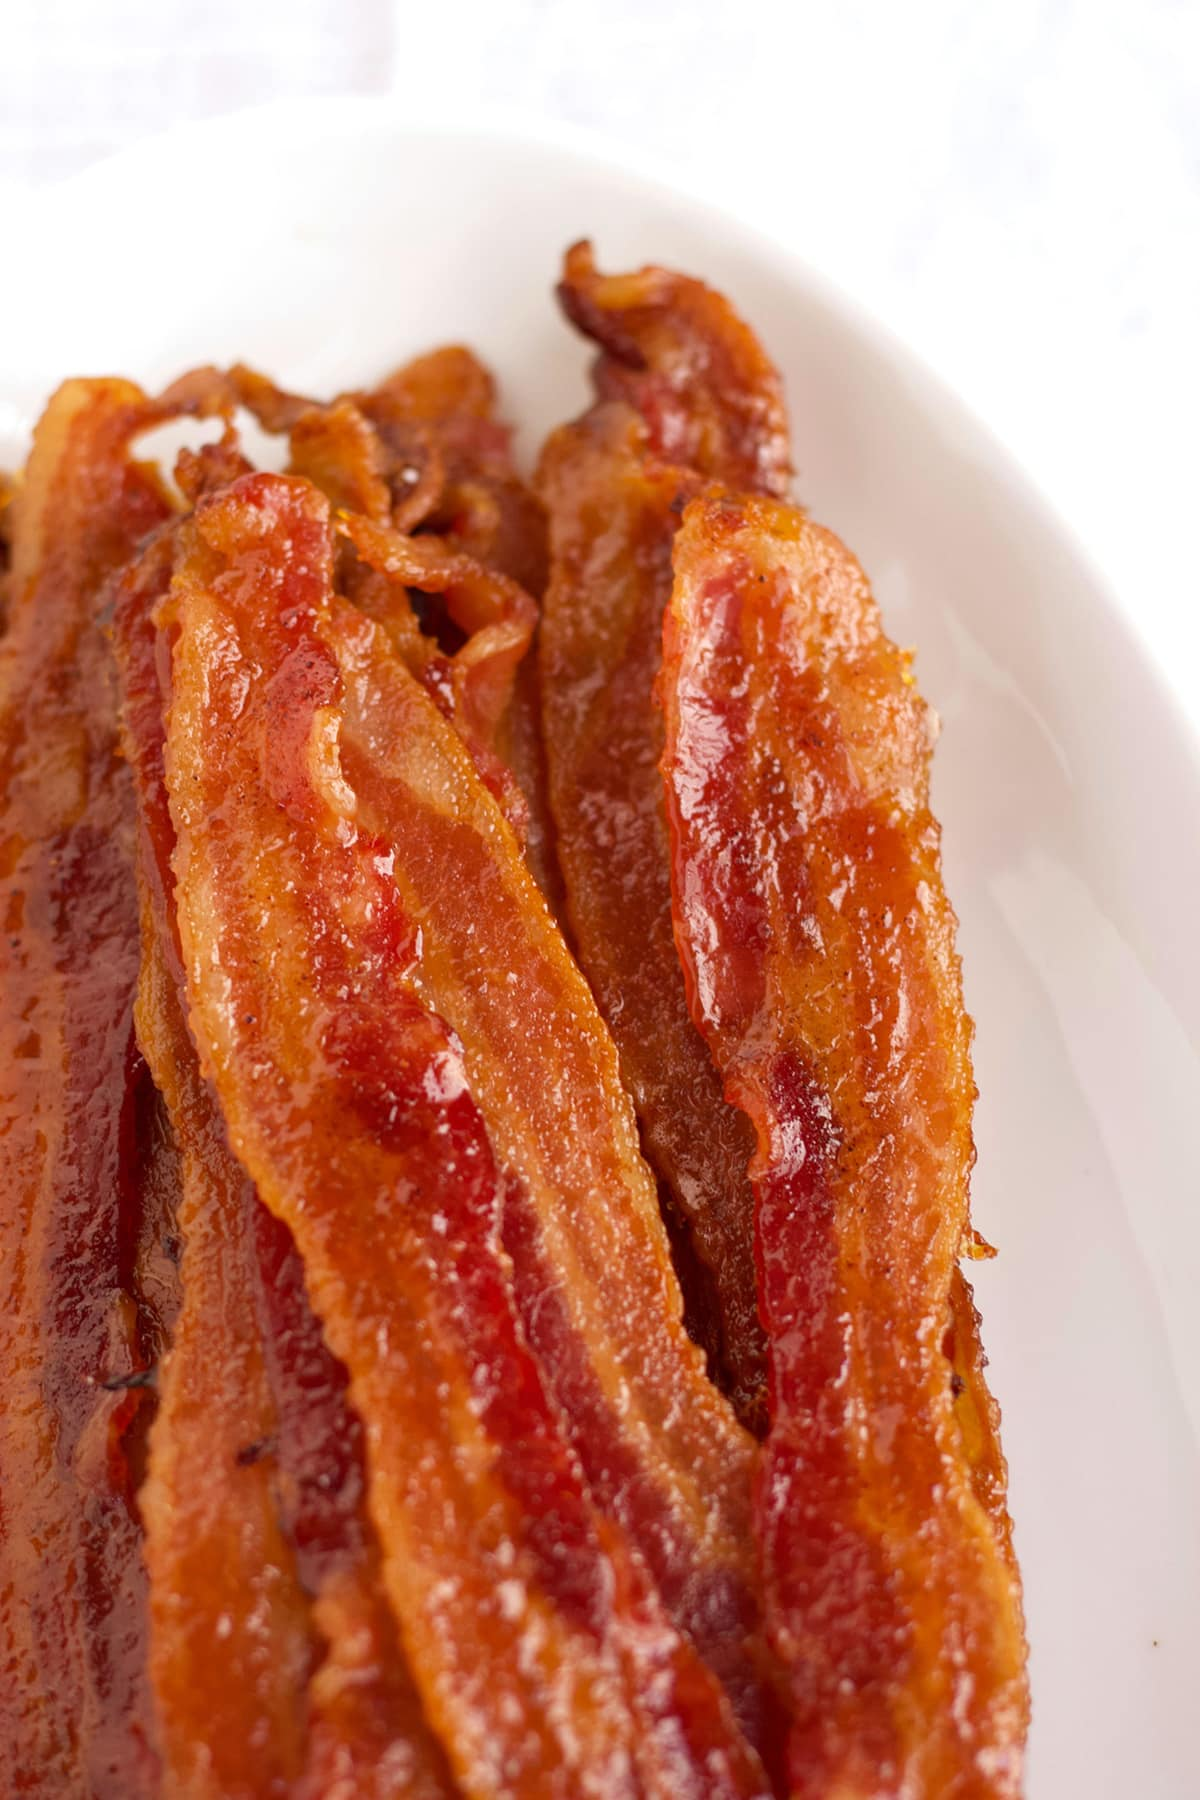 Slices of candied bacon on white platter for brunch.